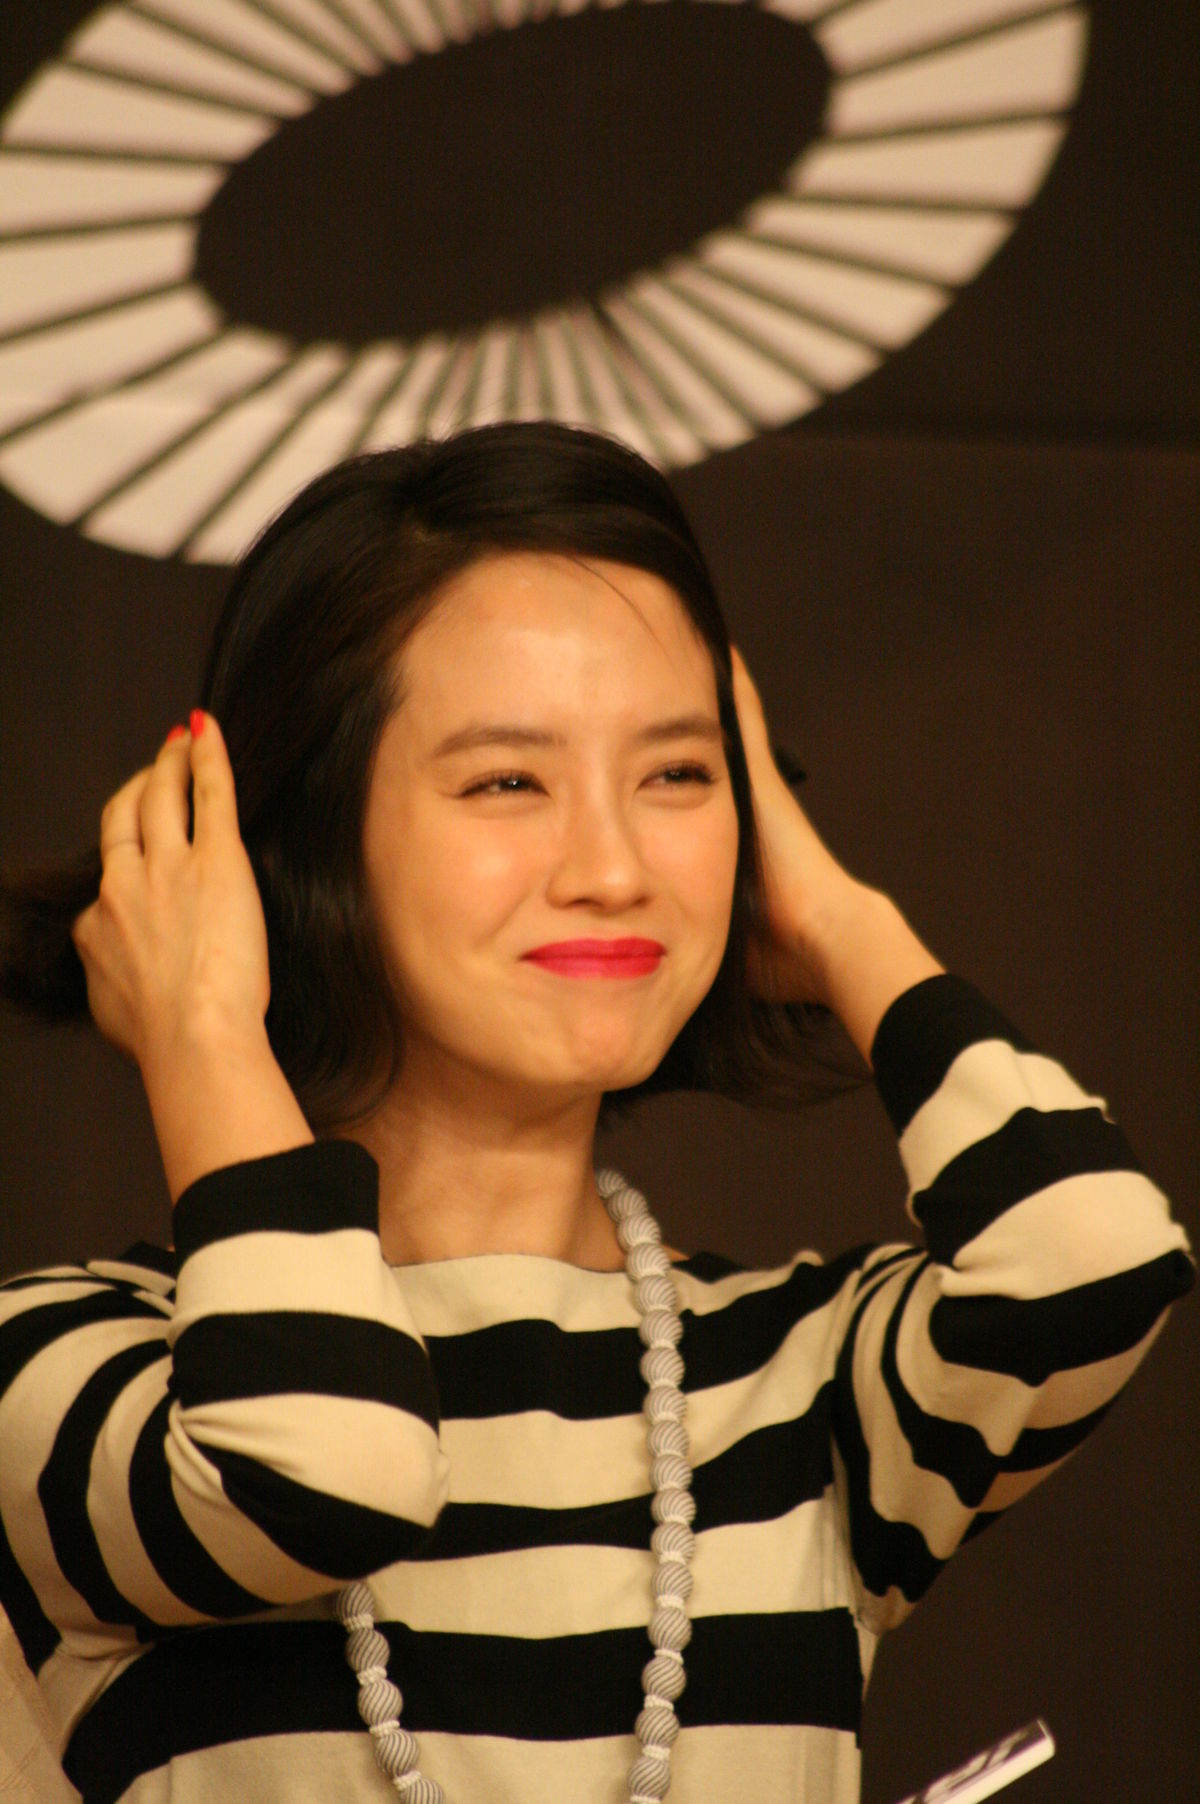 song ji hyo dating mobster names